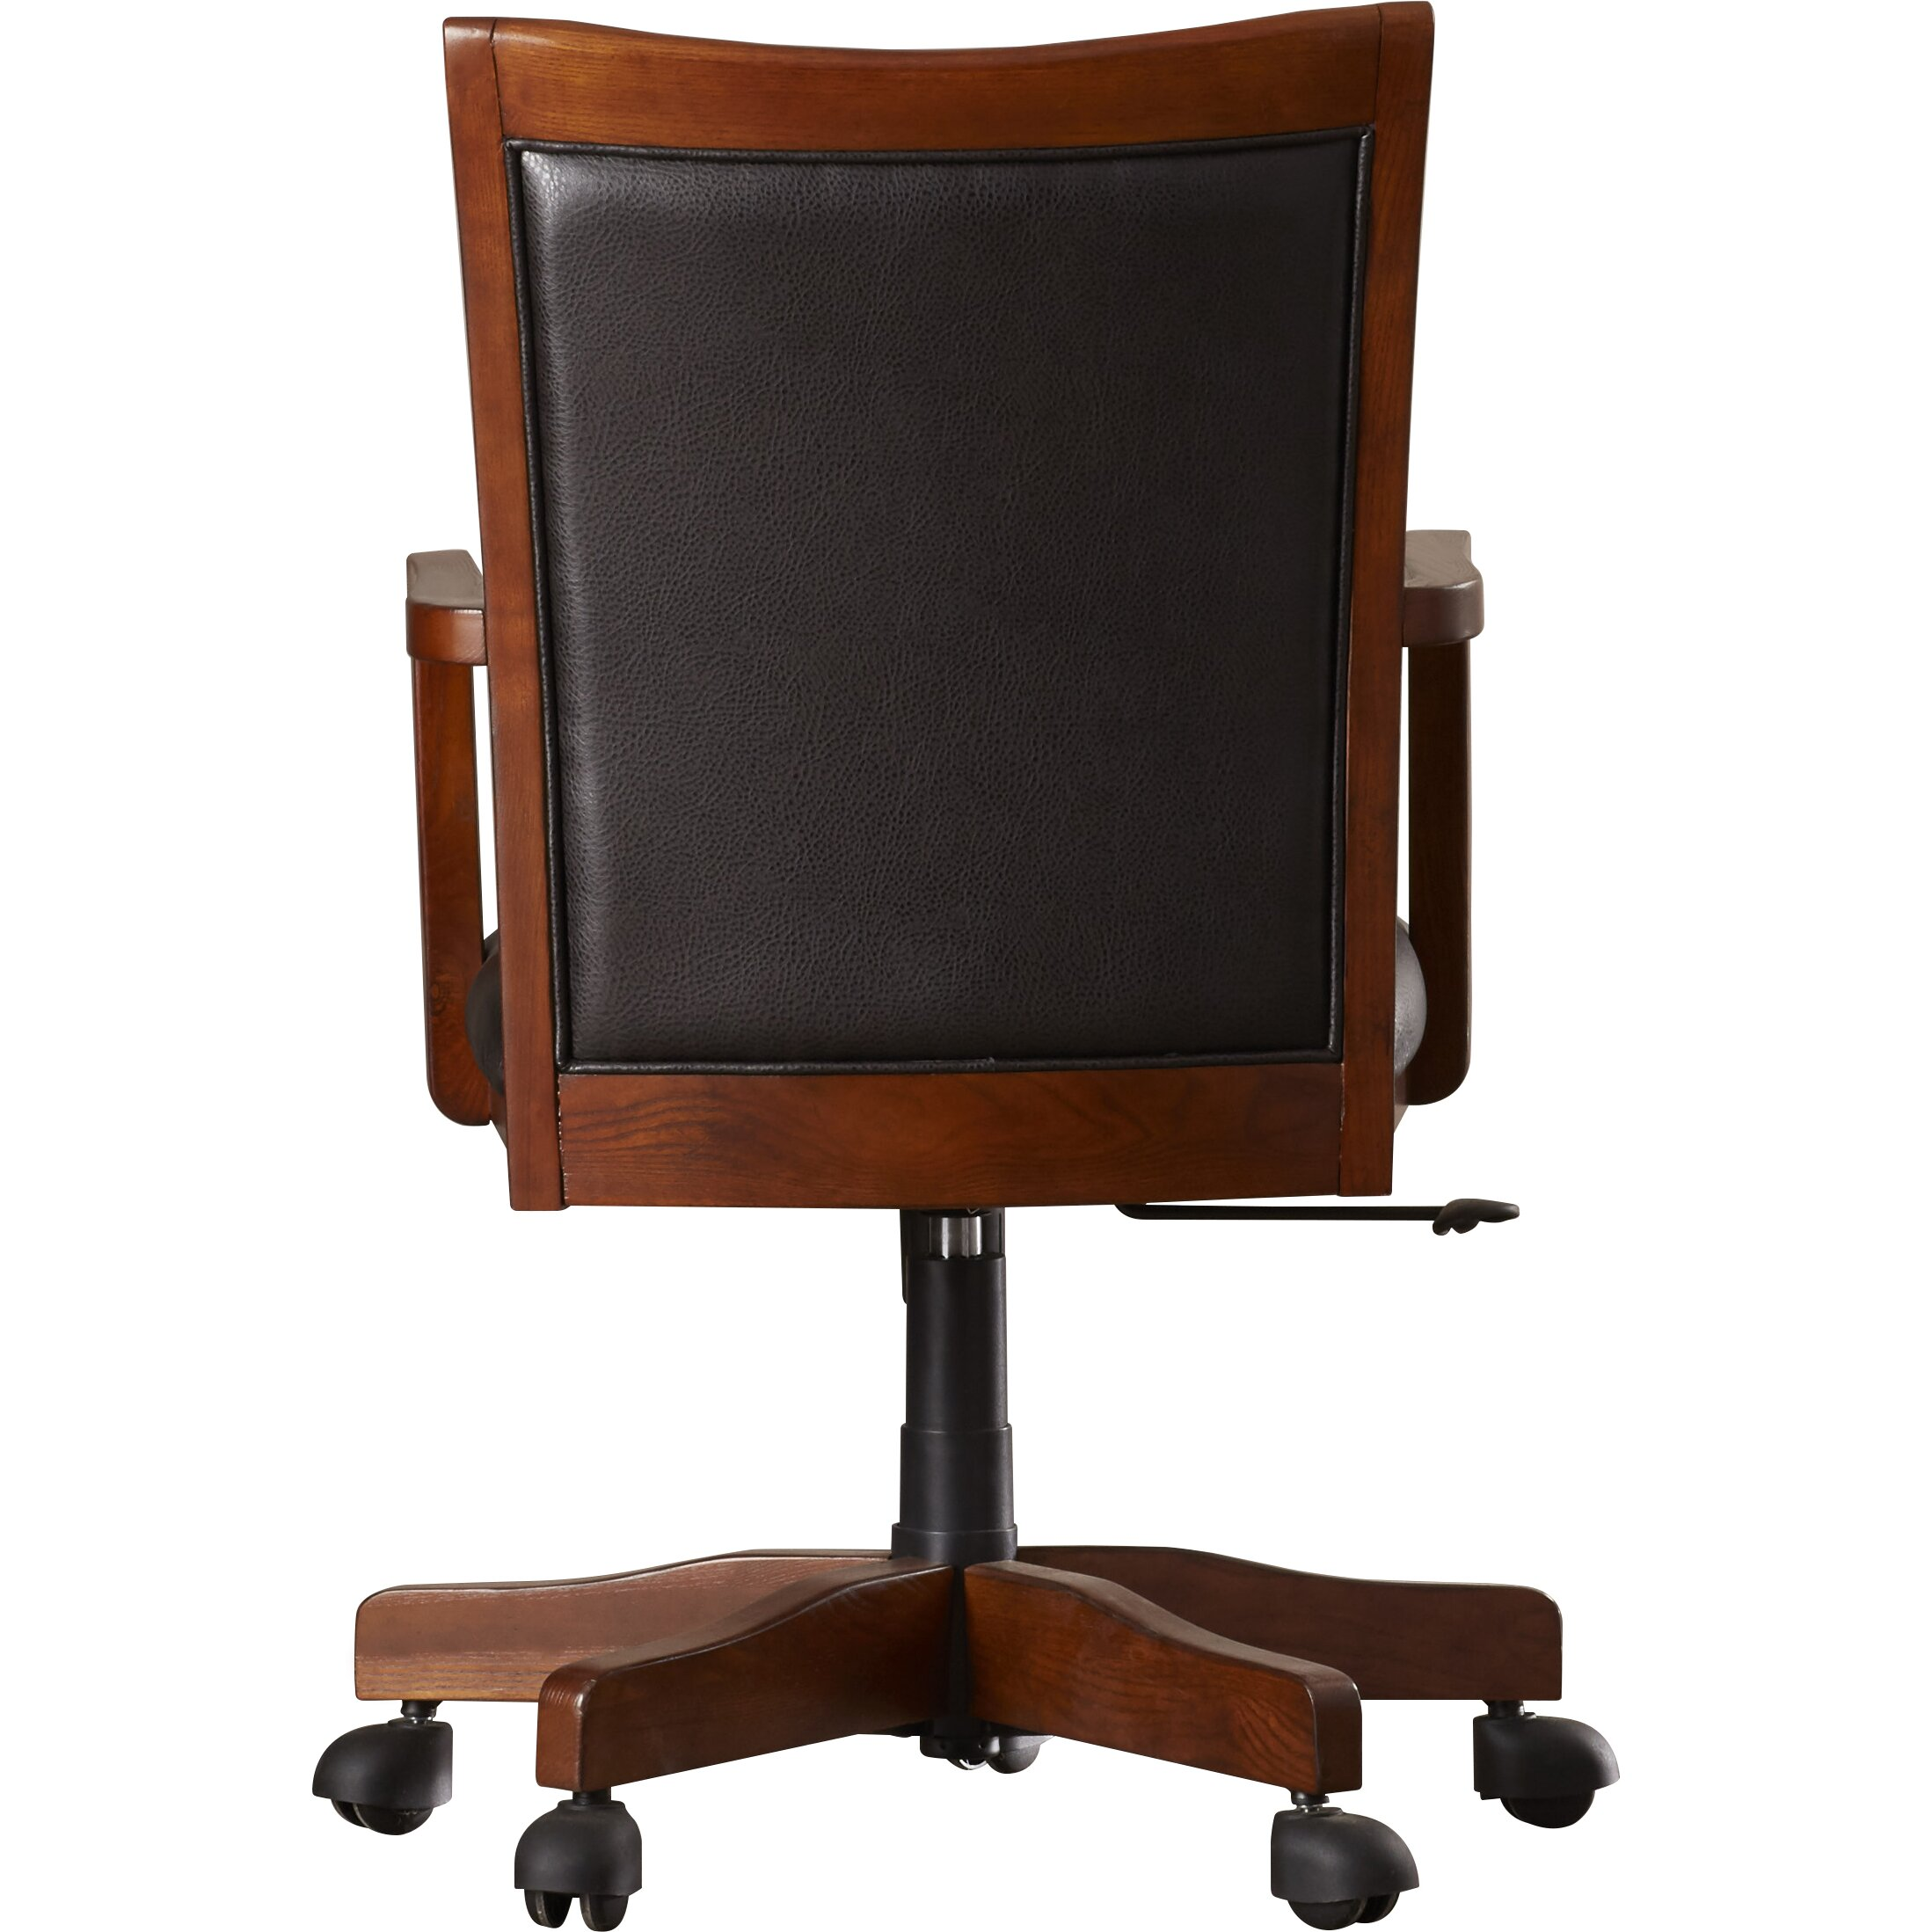 Loon peak flagstaff high back executive office chair with Peak office furniture